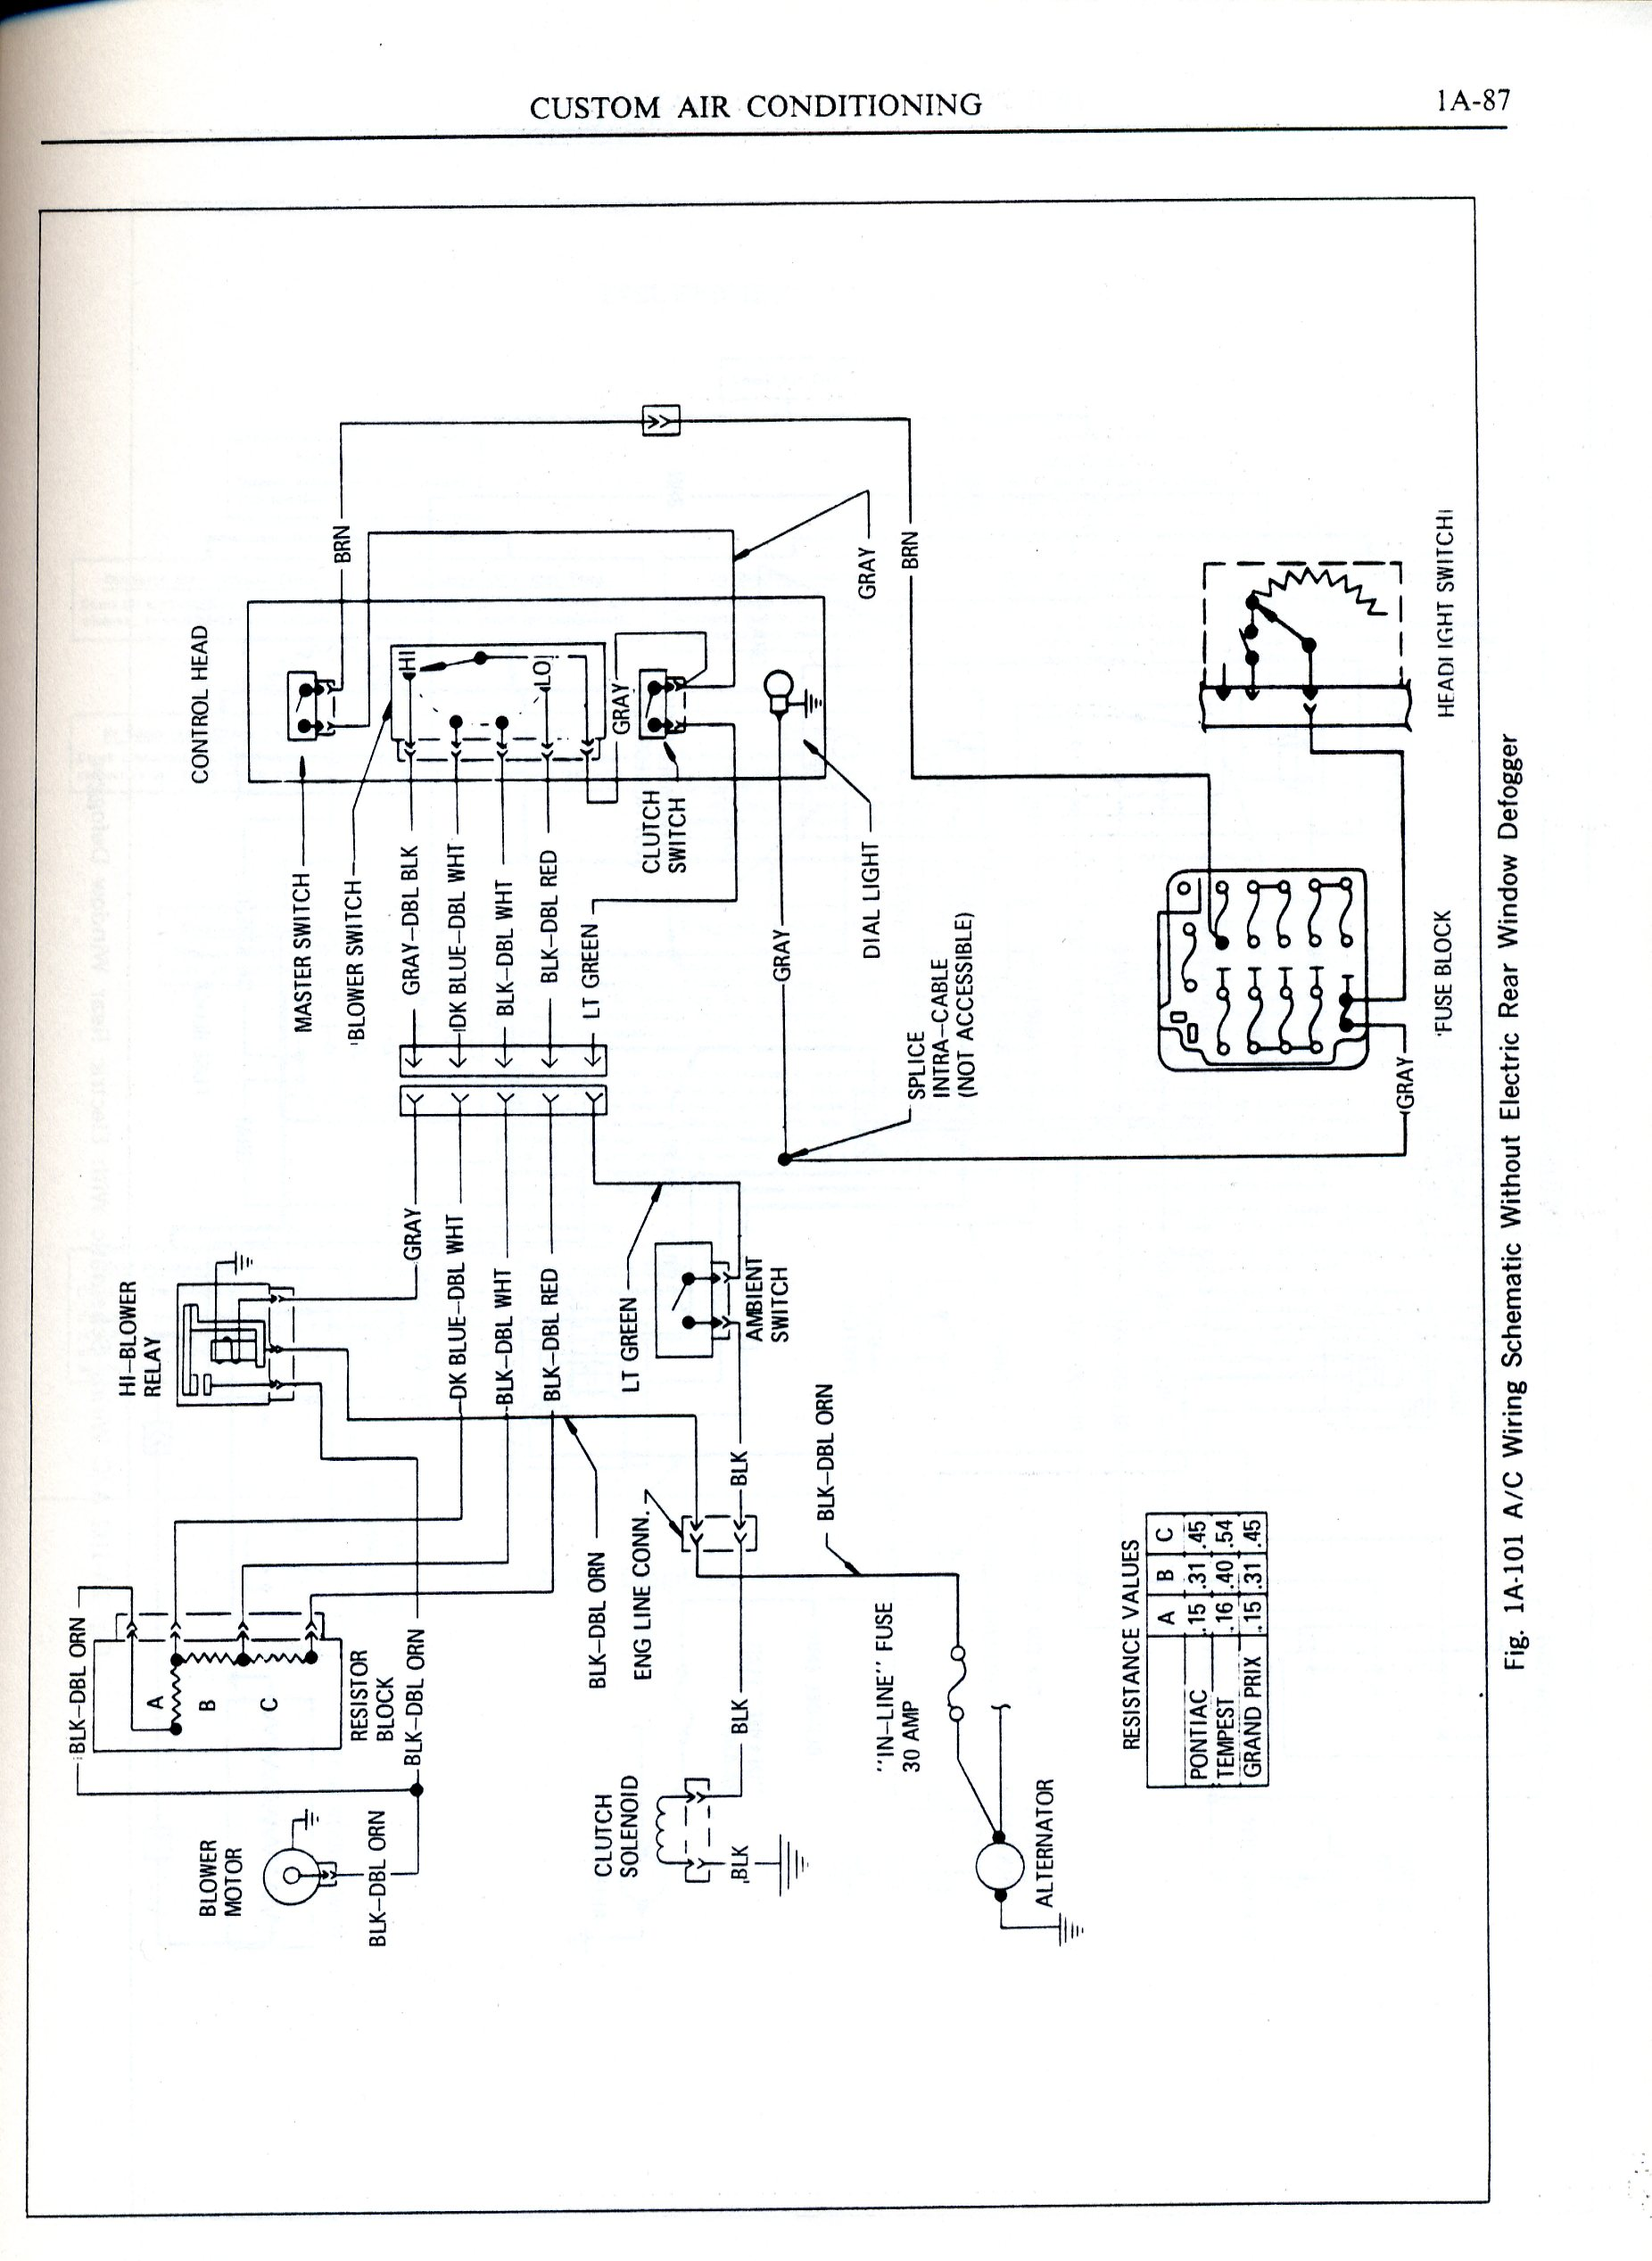 wiring diagram for 1971 mustang the wiring diagram 1971 pontiac lemans wiring diagram 1971 car wiring wiring diagram